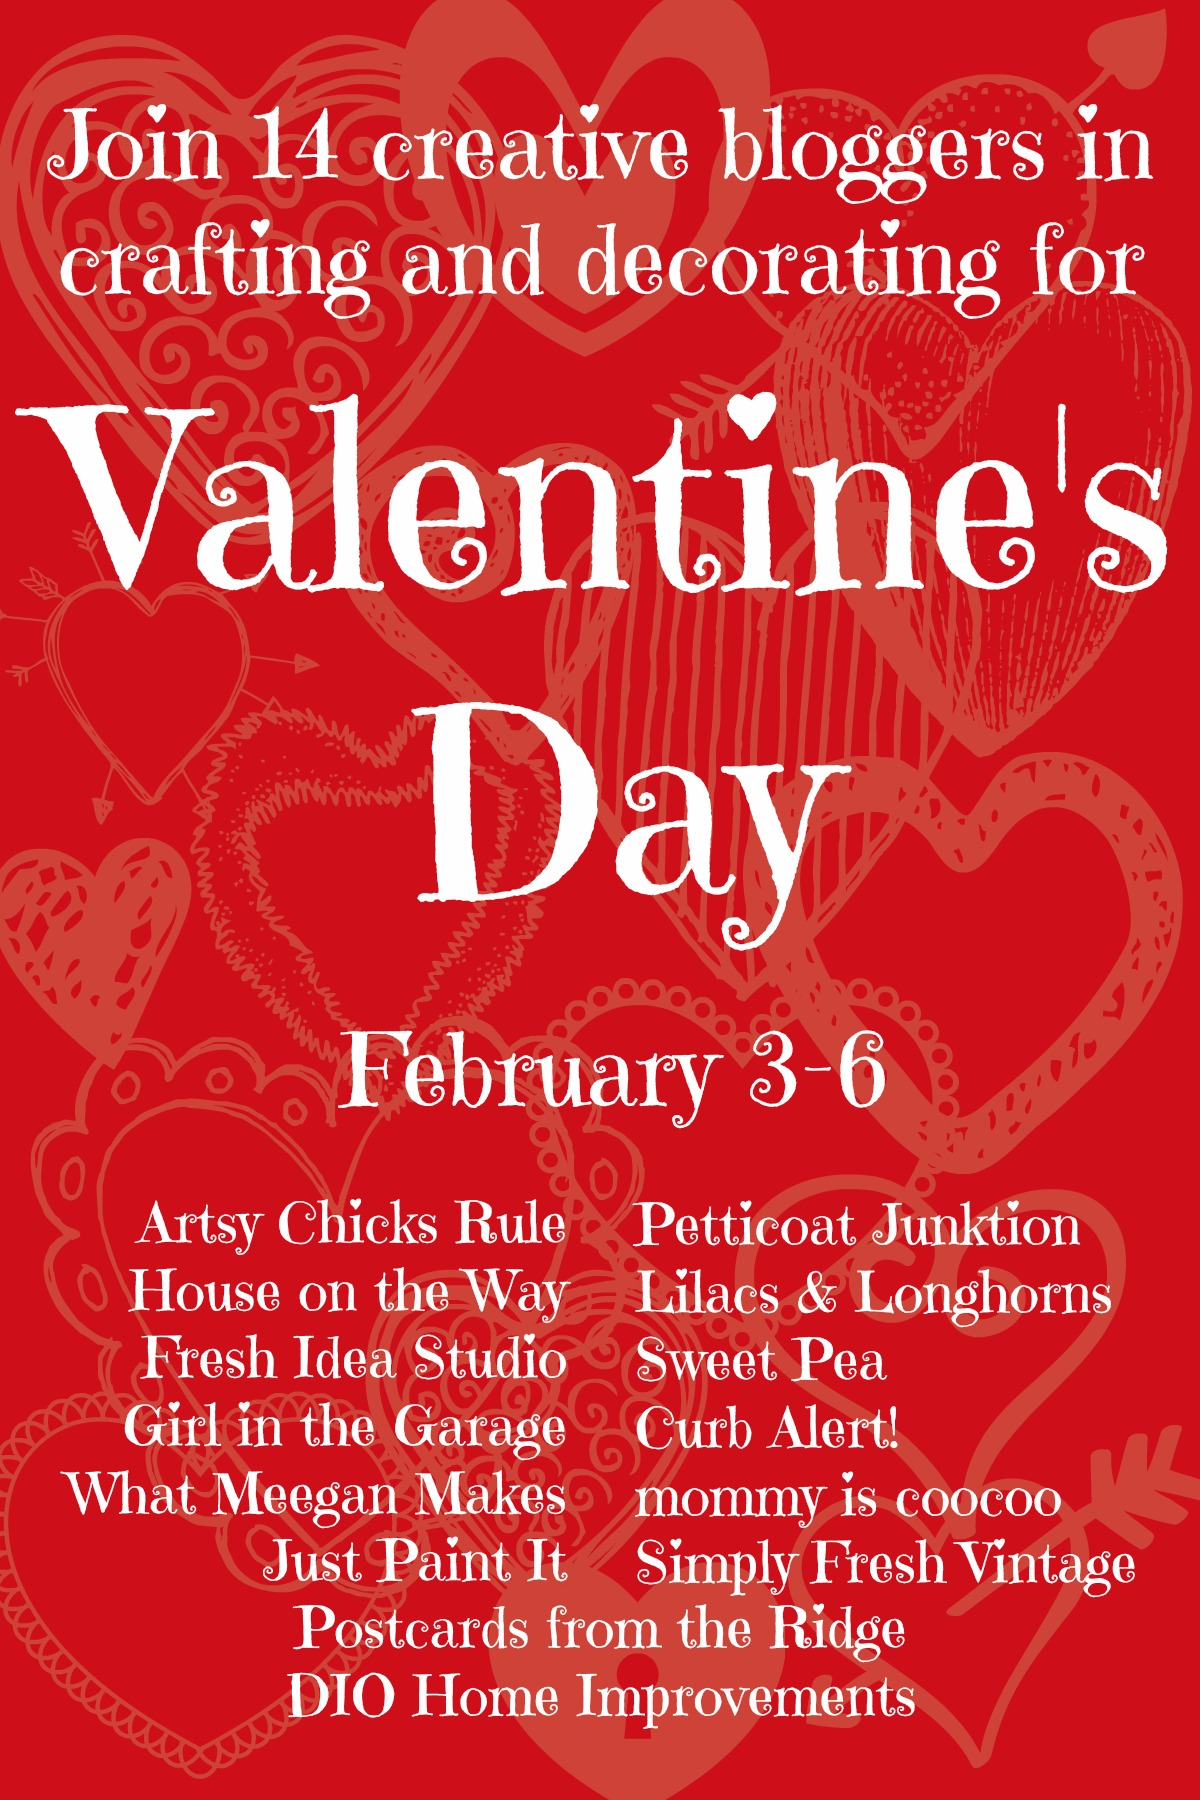 valentines day tour 14 creative bloggers share their crafts and decor for the holiday of